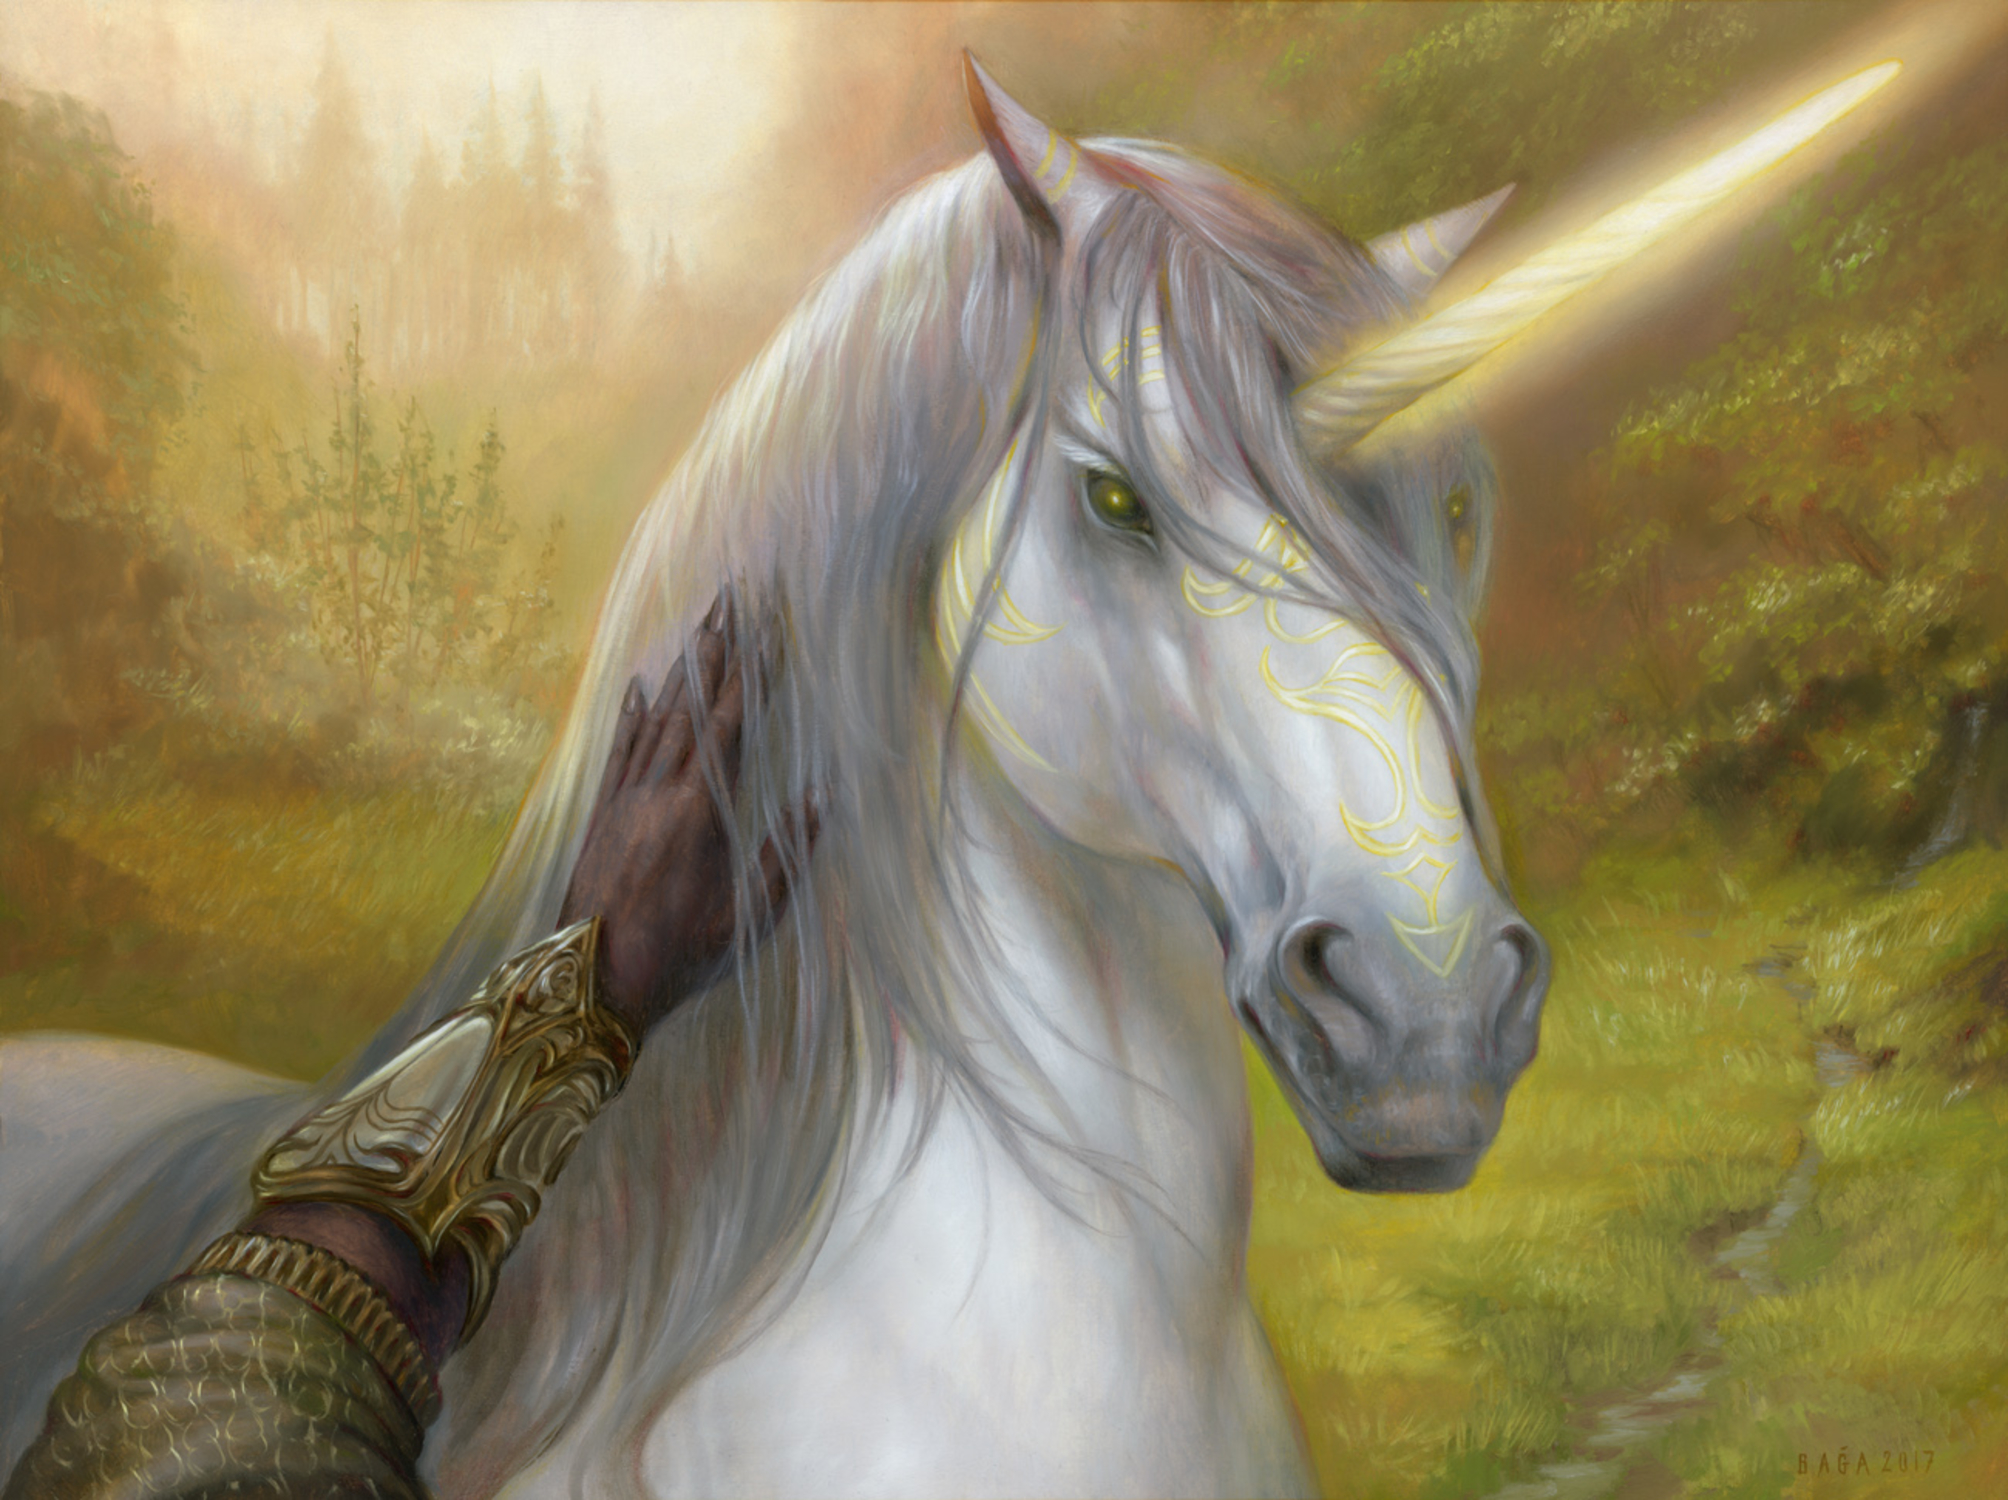 Loyal Unicorn Artwork by Volkan Baga